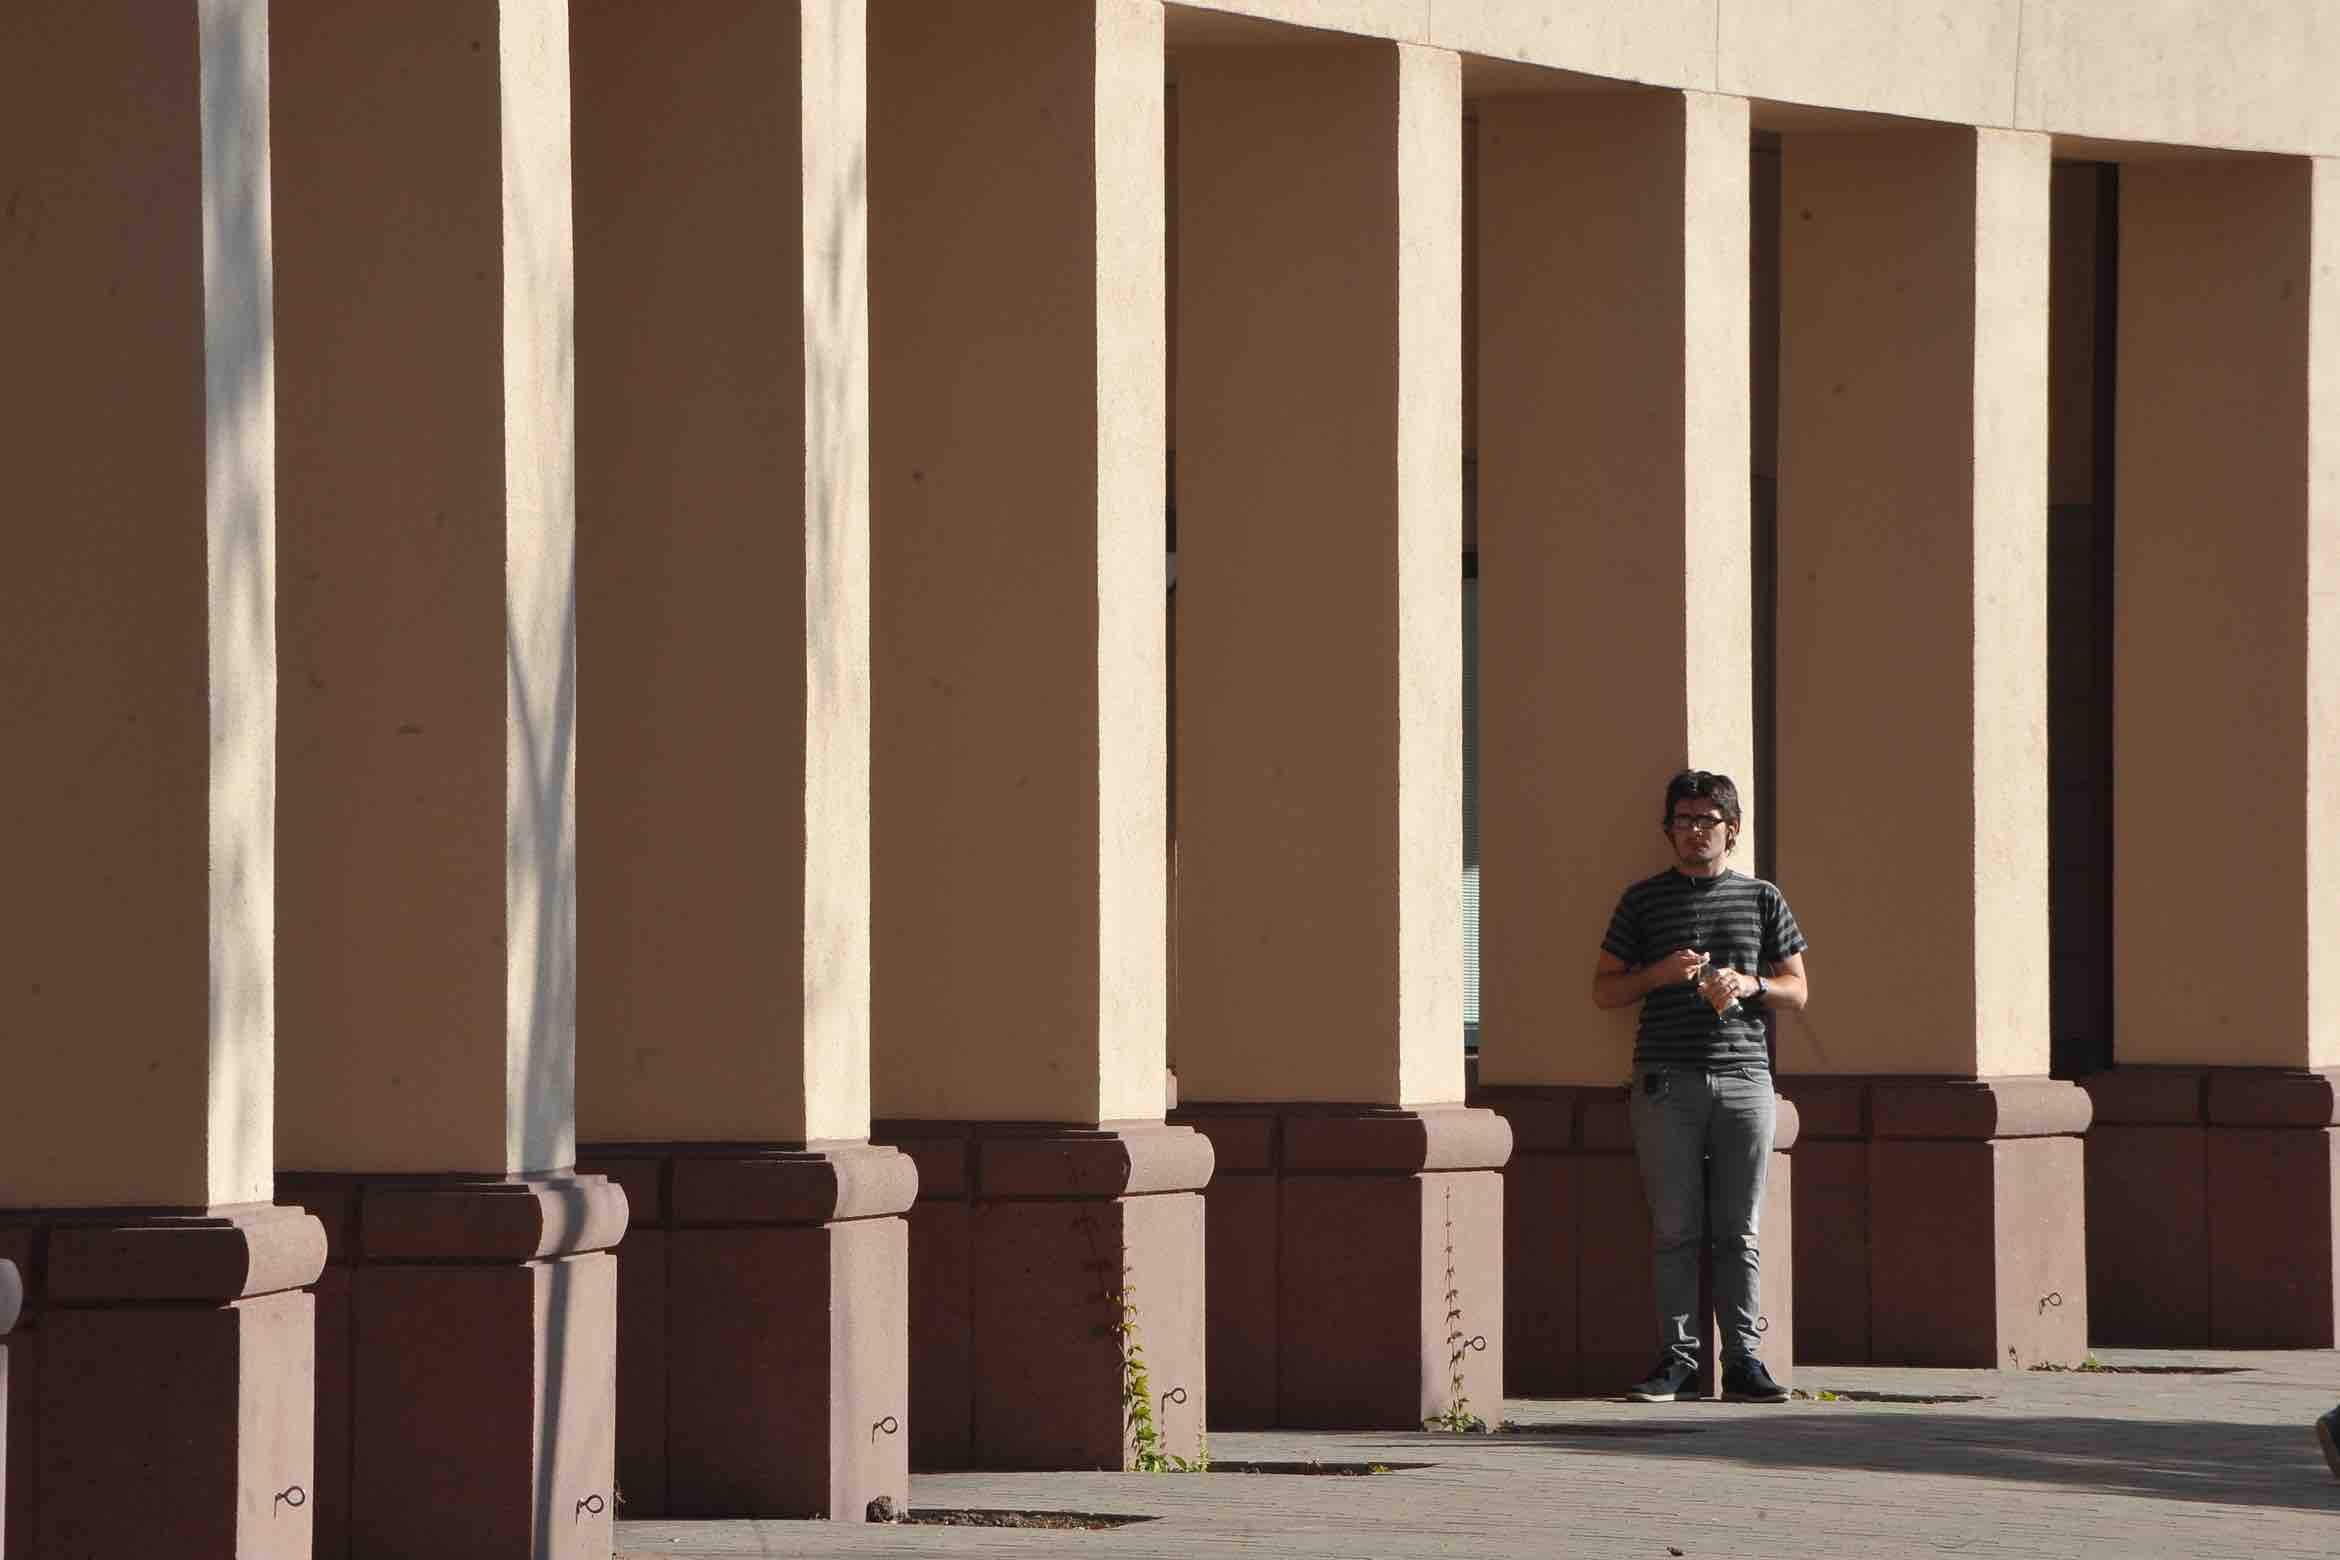 student standing in front of building columns